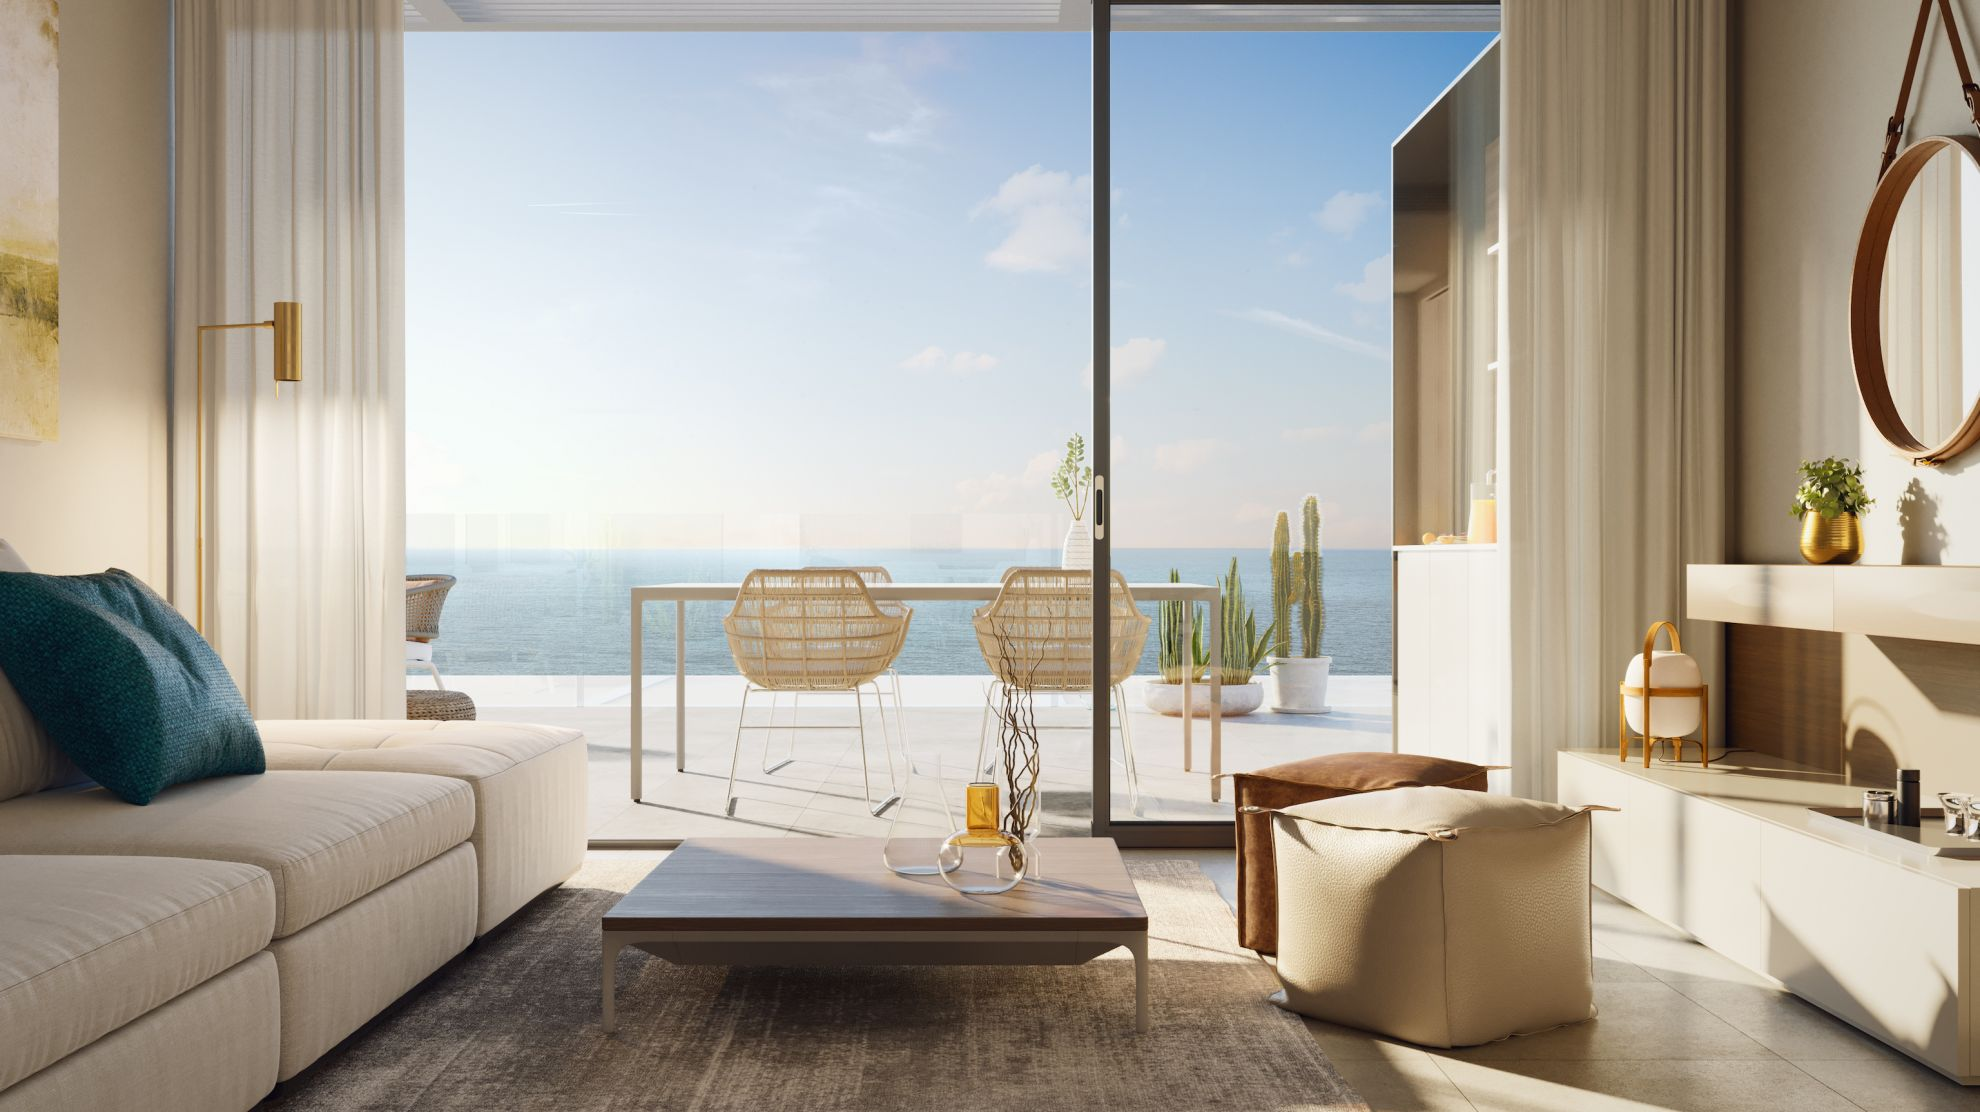 2 and 3 bedroom penthouse-style apartments with big terraces overlookg the sea. House 12 32